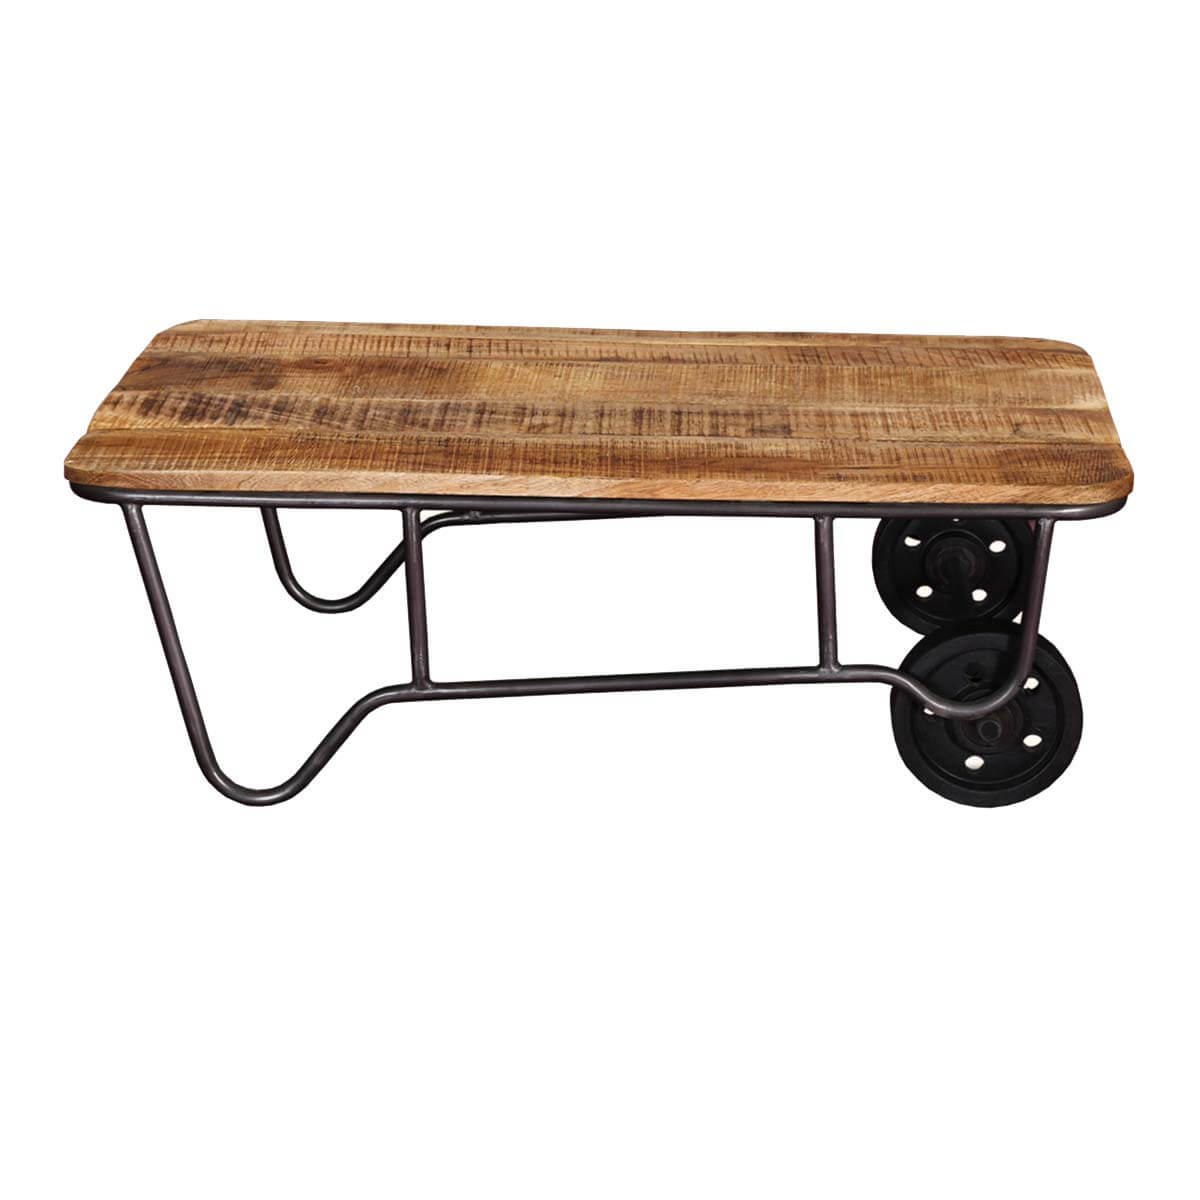 Industrial rustic mango wood iron rolling coffee table Rustic wood and metal coffee table